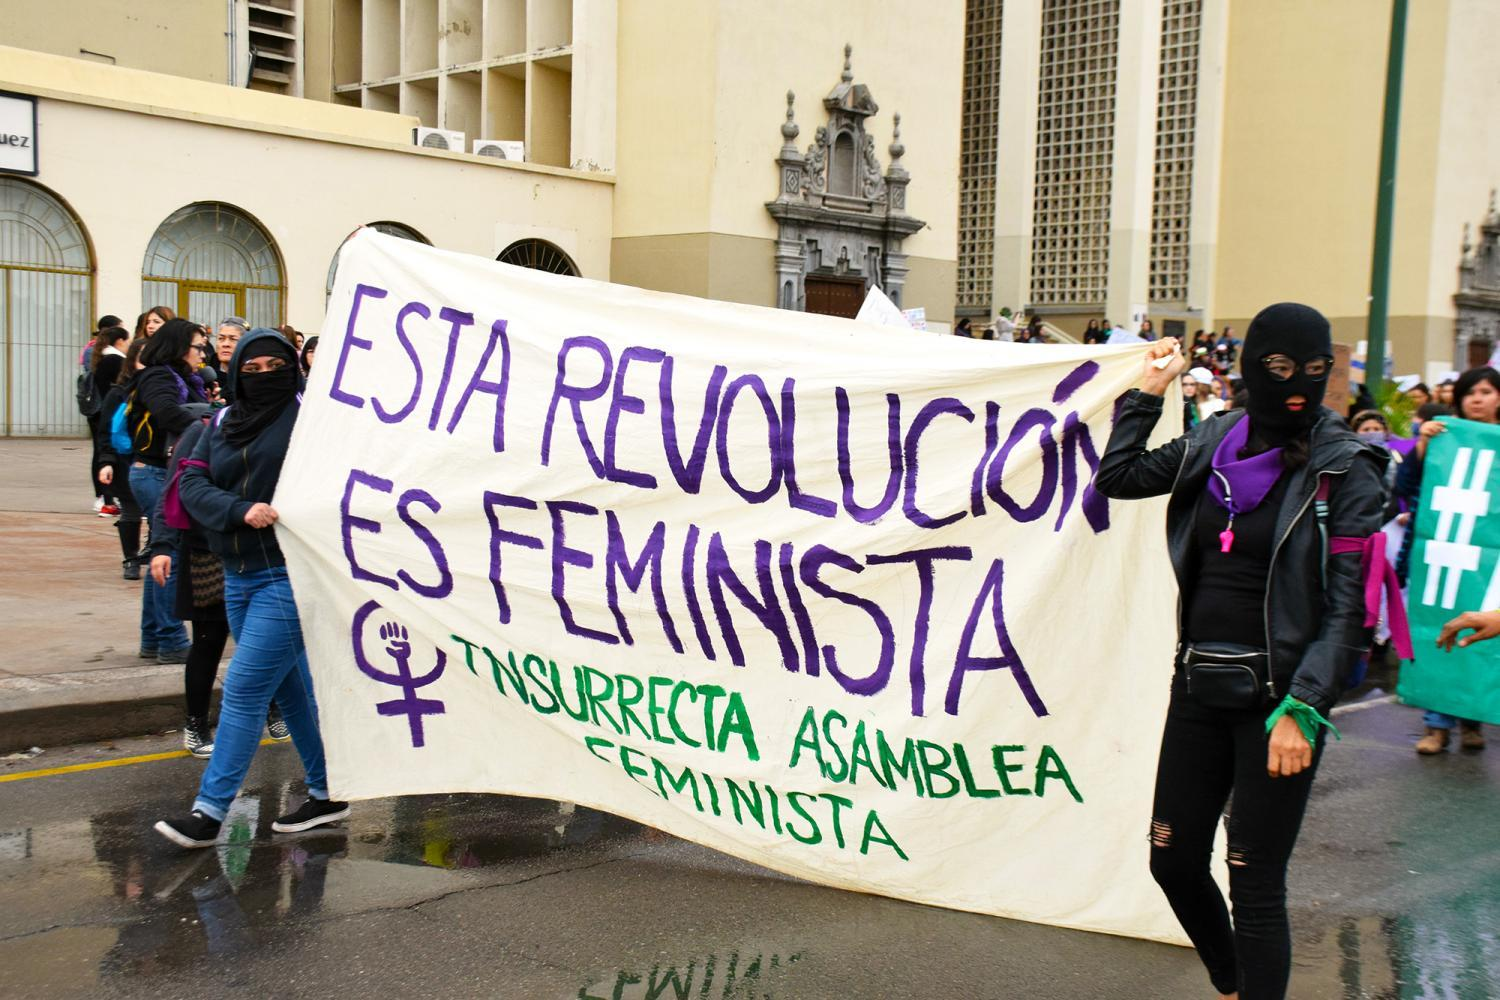 This revolution is feminist